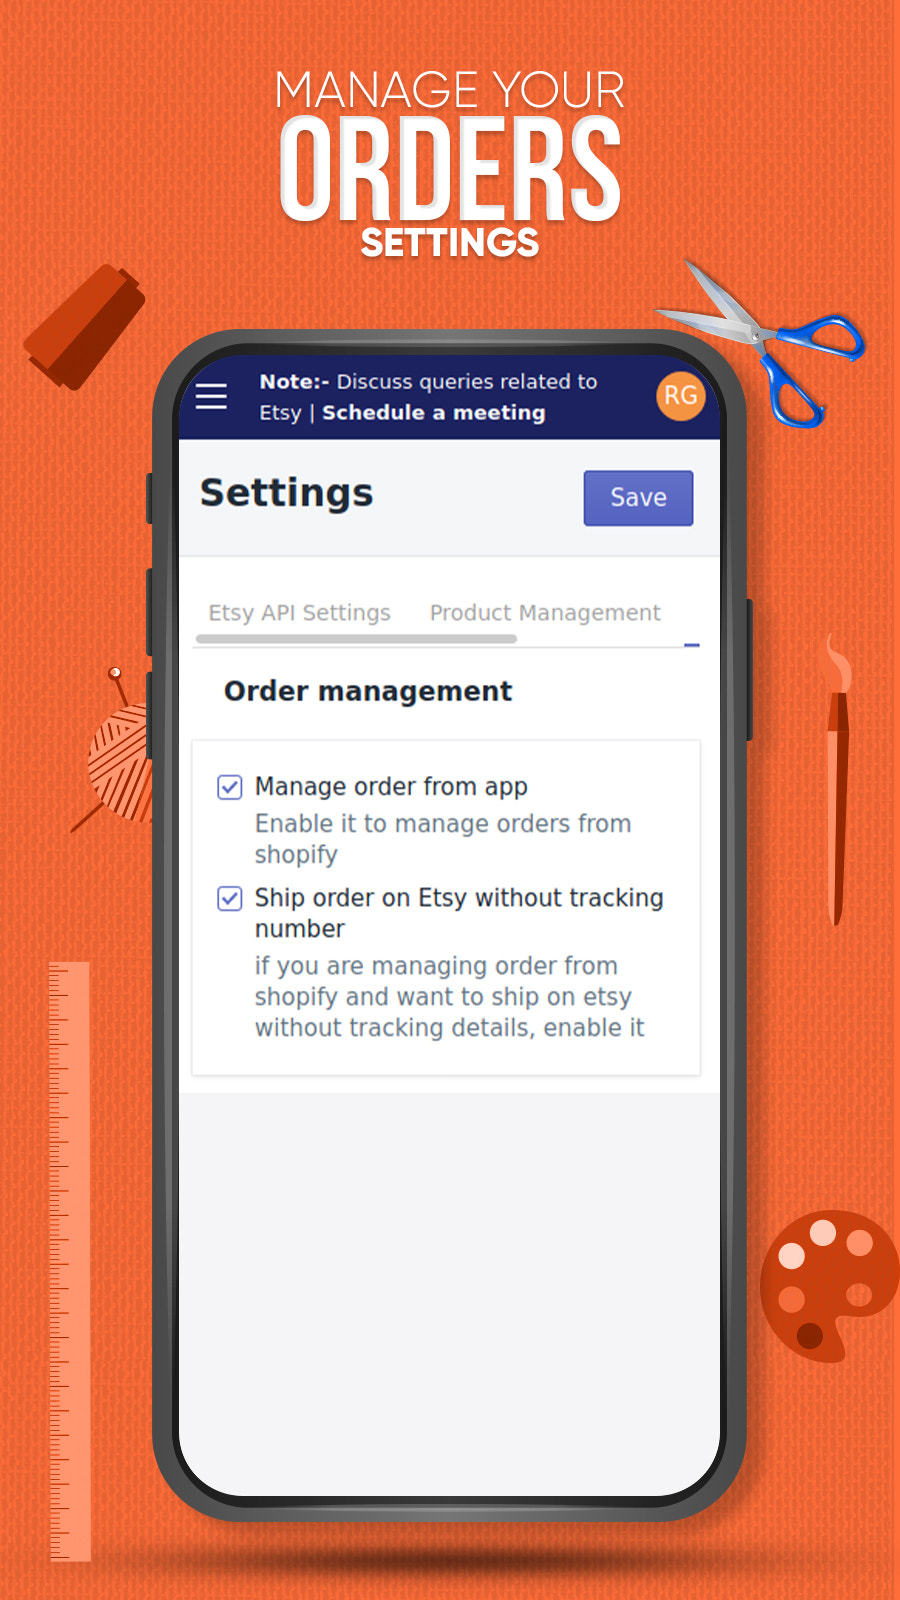 Manage orders settings between Shopify and Etsy